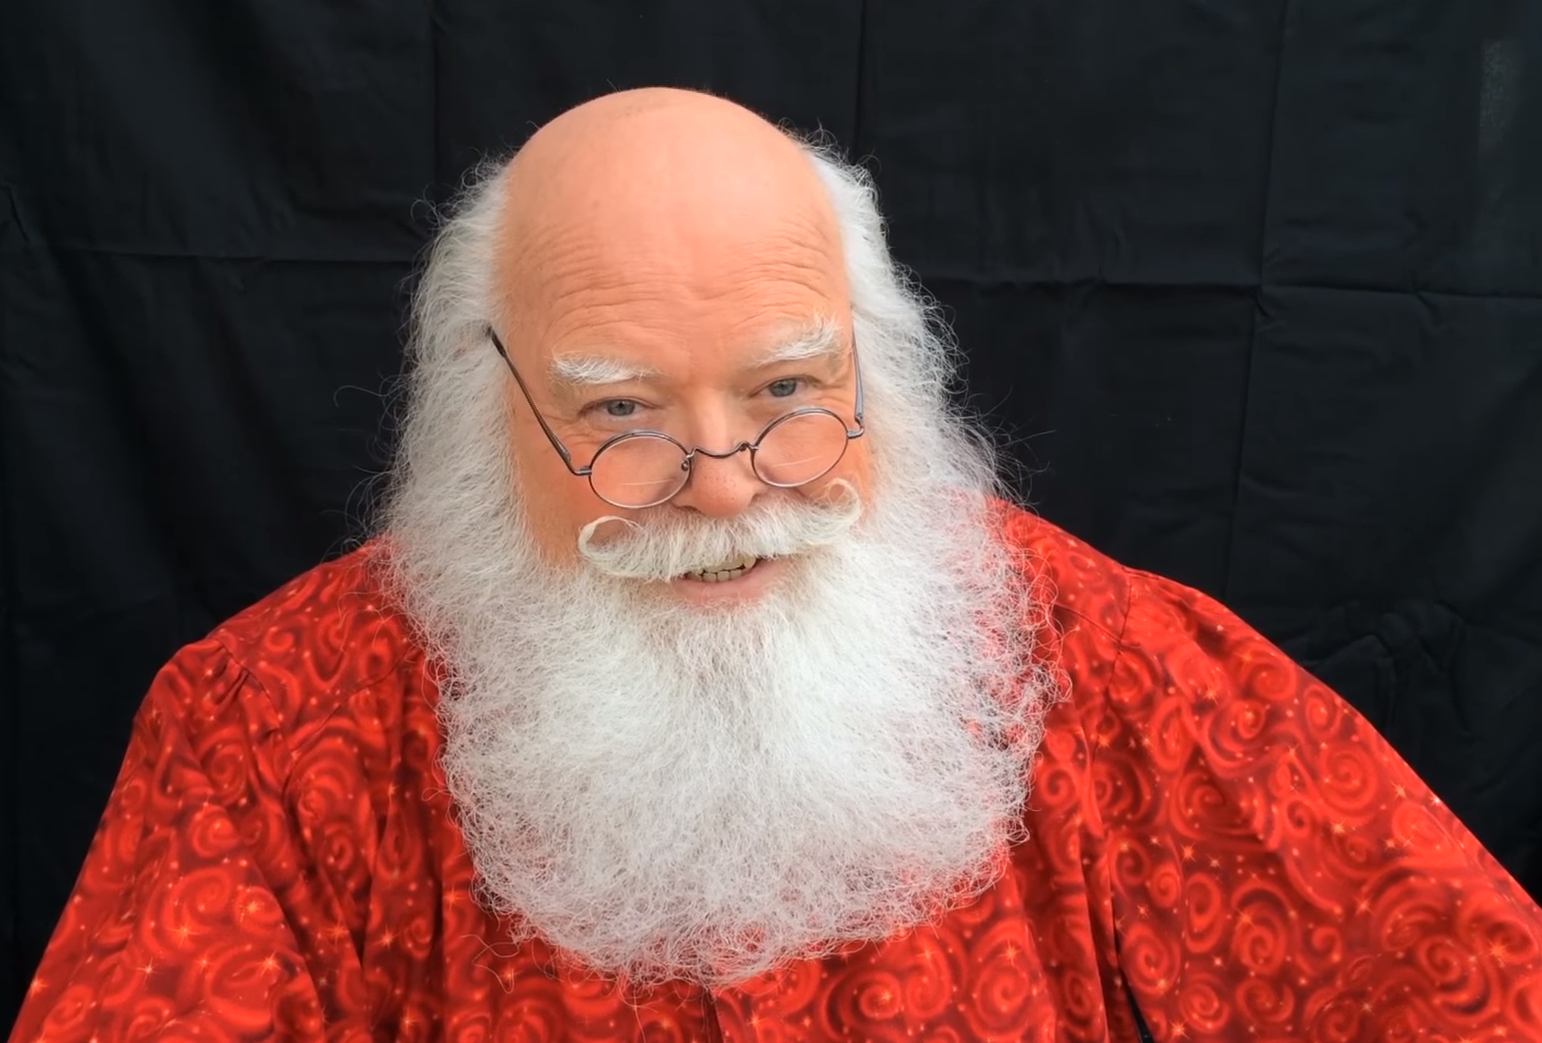 Santa Claus Makeup Tutorial